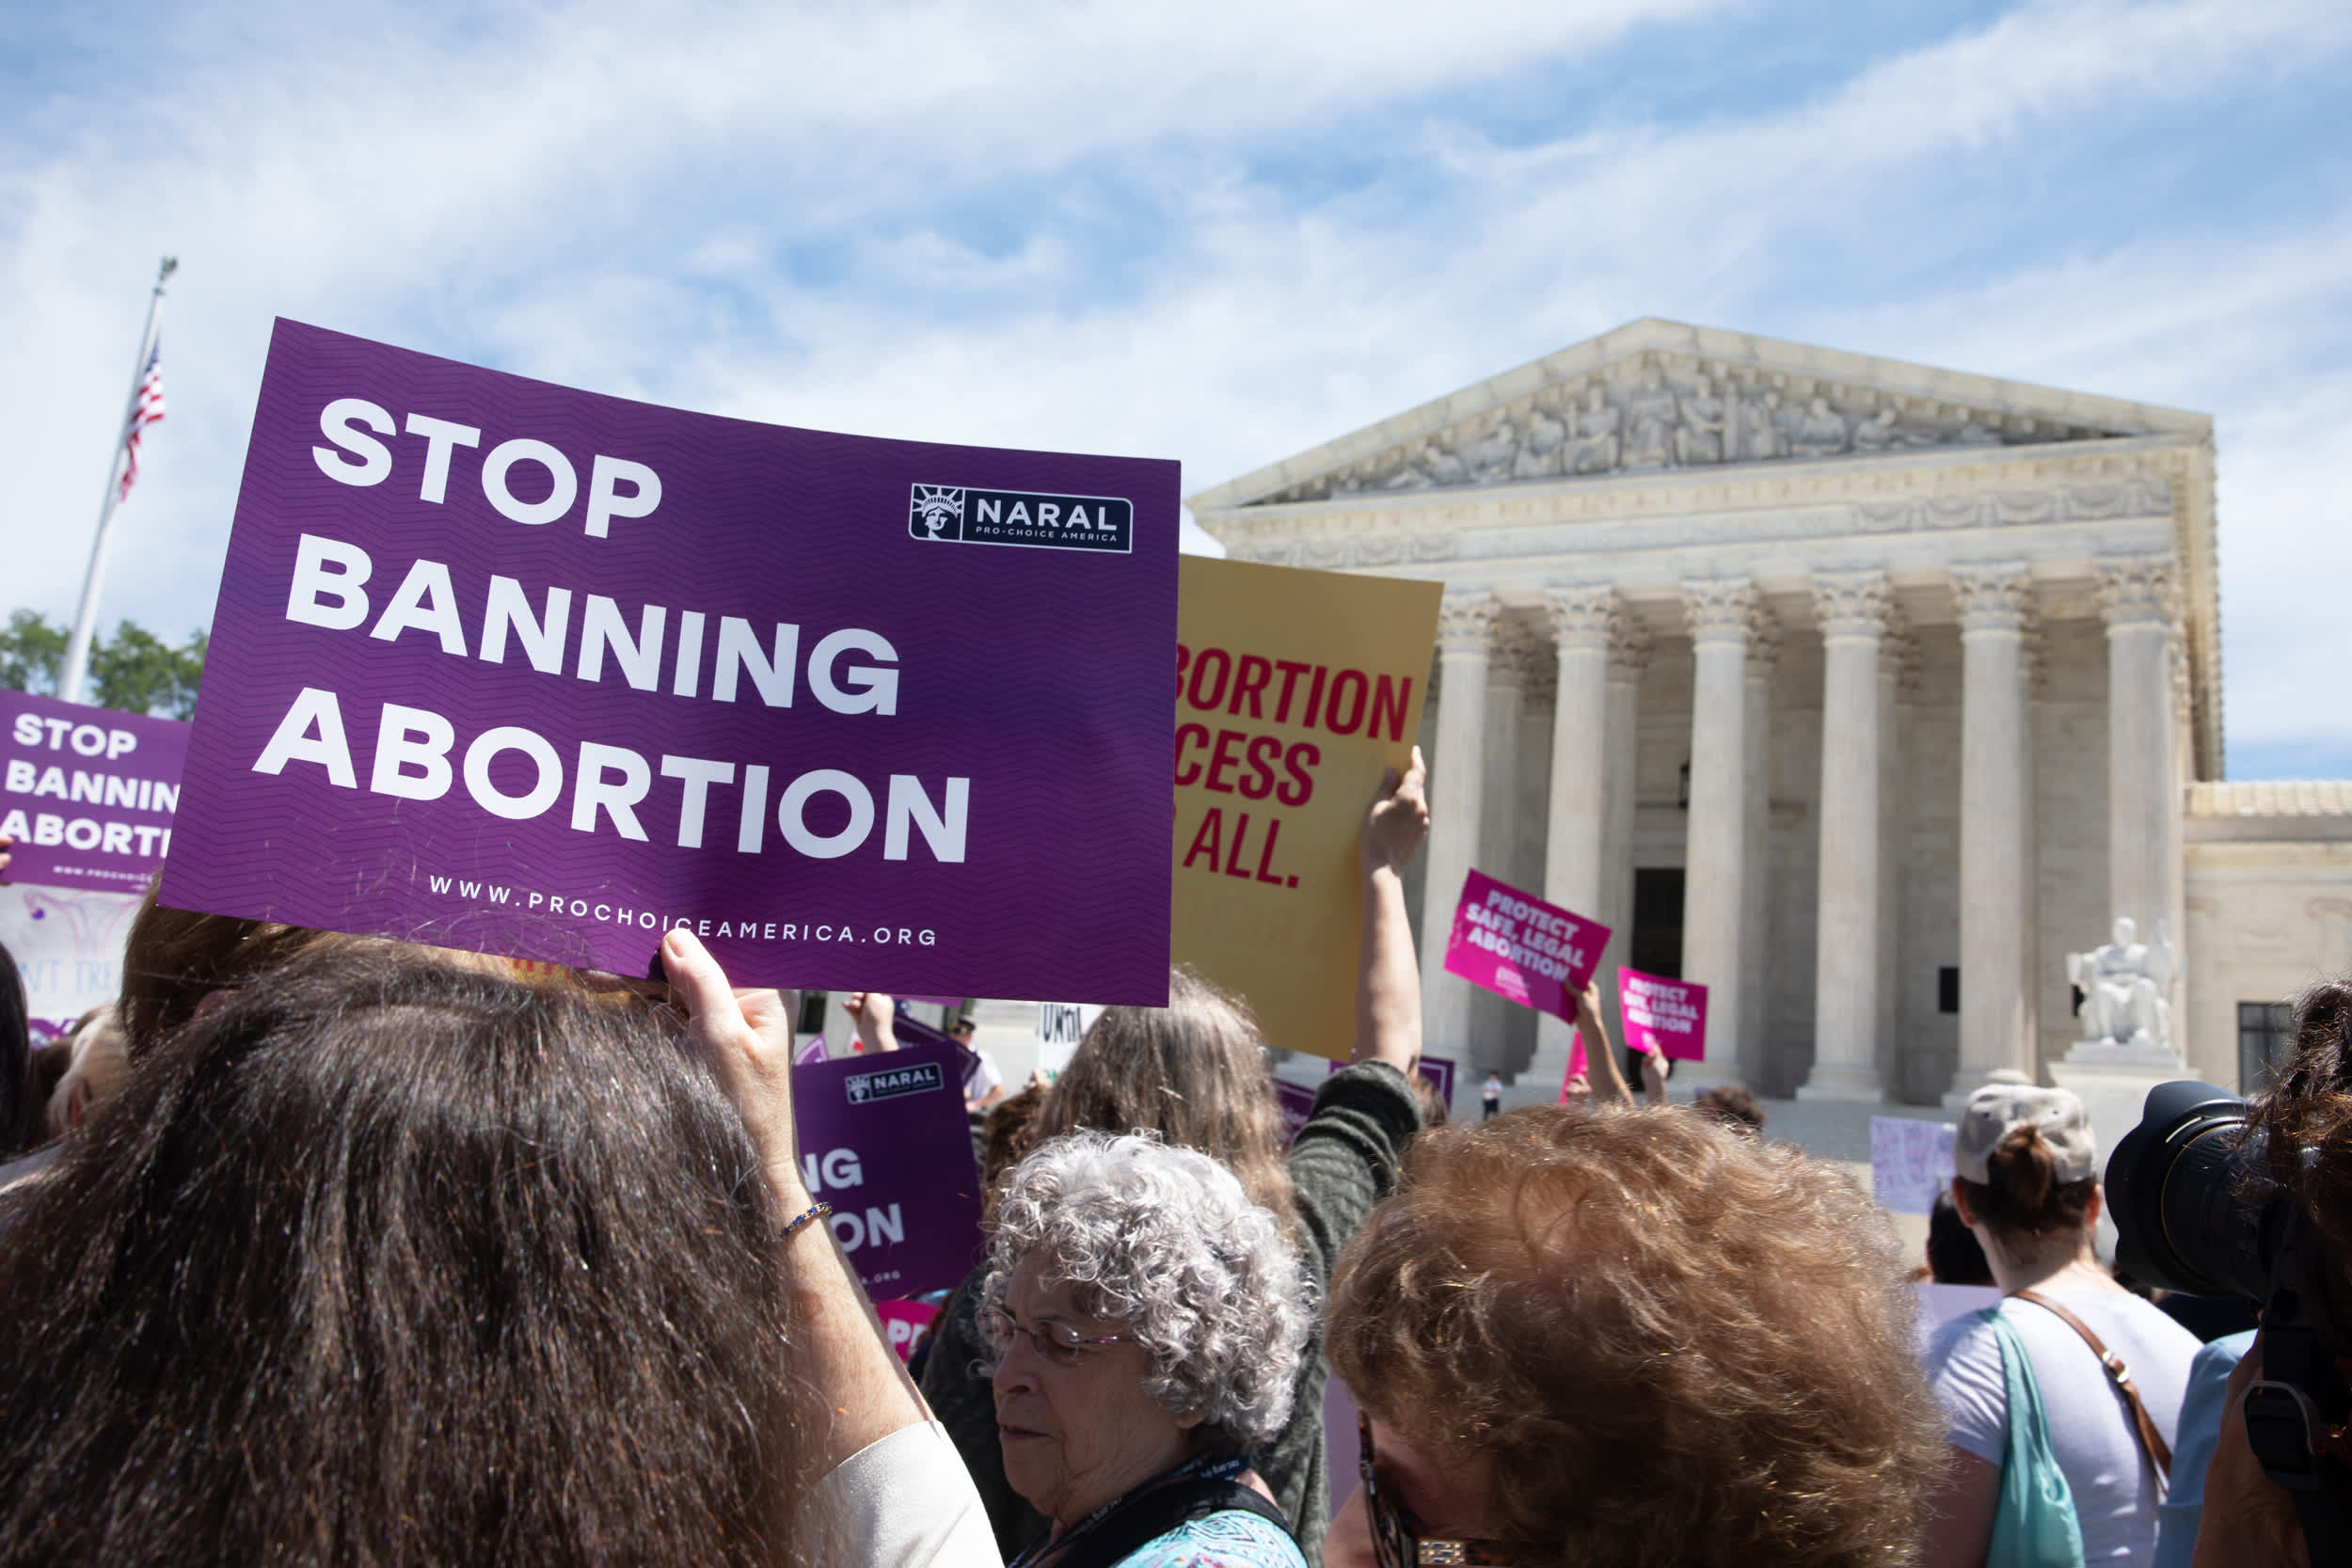 Abortionrights activist gathered outside the U.S. Supreme Court to protest against the recent abortion laws passed across the country in recent weeks. Tuesday, May 21, 2019. Washington, D.C.